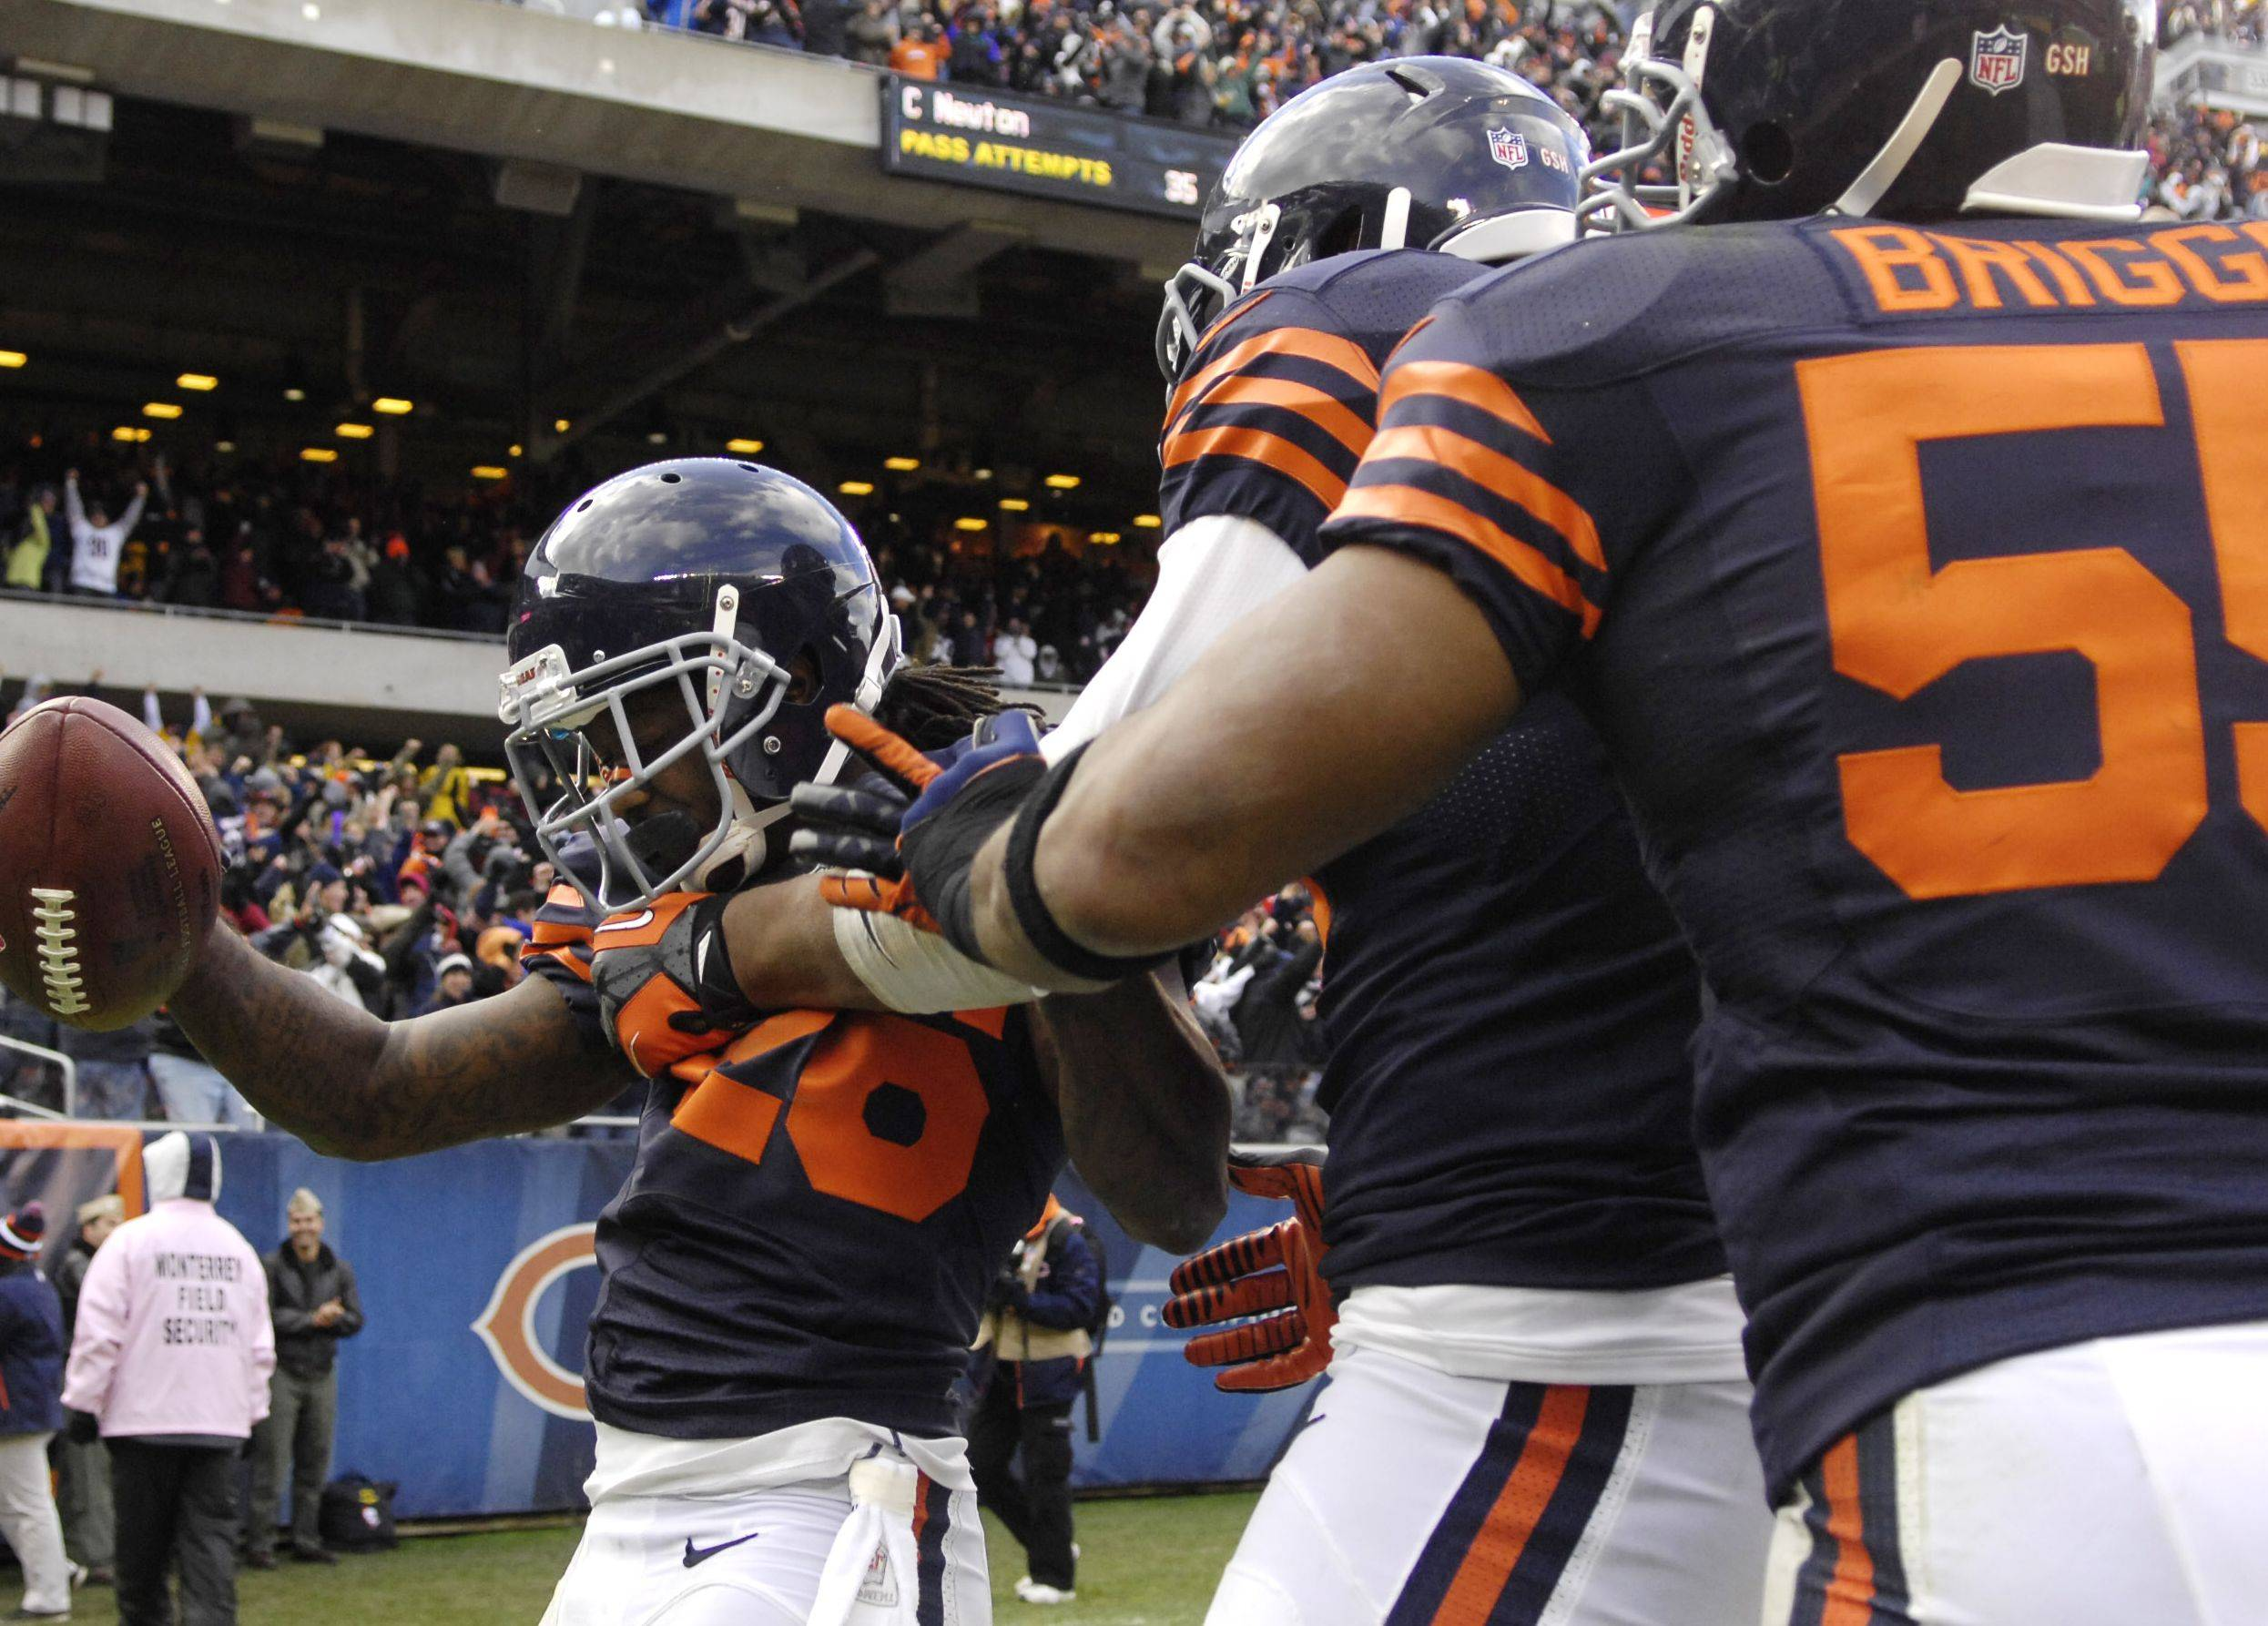 Bears cornerback Tim Jennings (26) is swarmed by teammates after his fourth-quarter interception return for a touchdown Sunday at Soldier Field. Jennings' play gave the Bears a 20-19 lead with 6:44 left in the game.